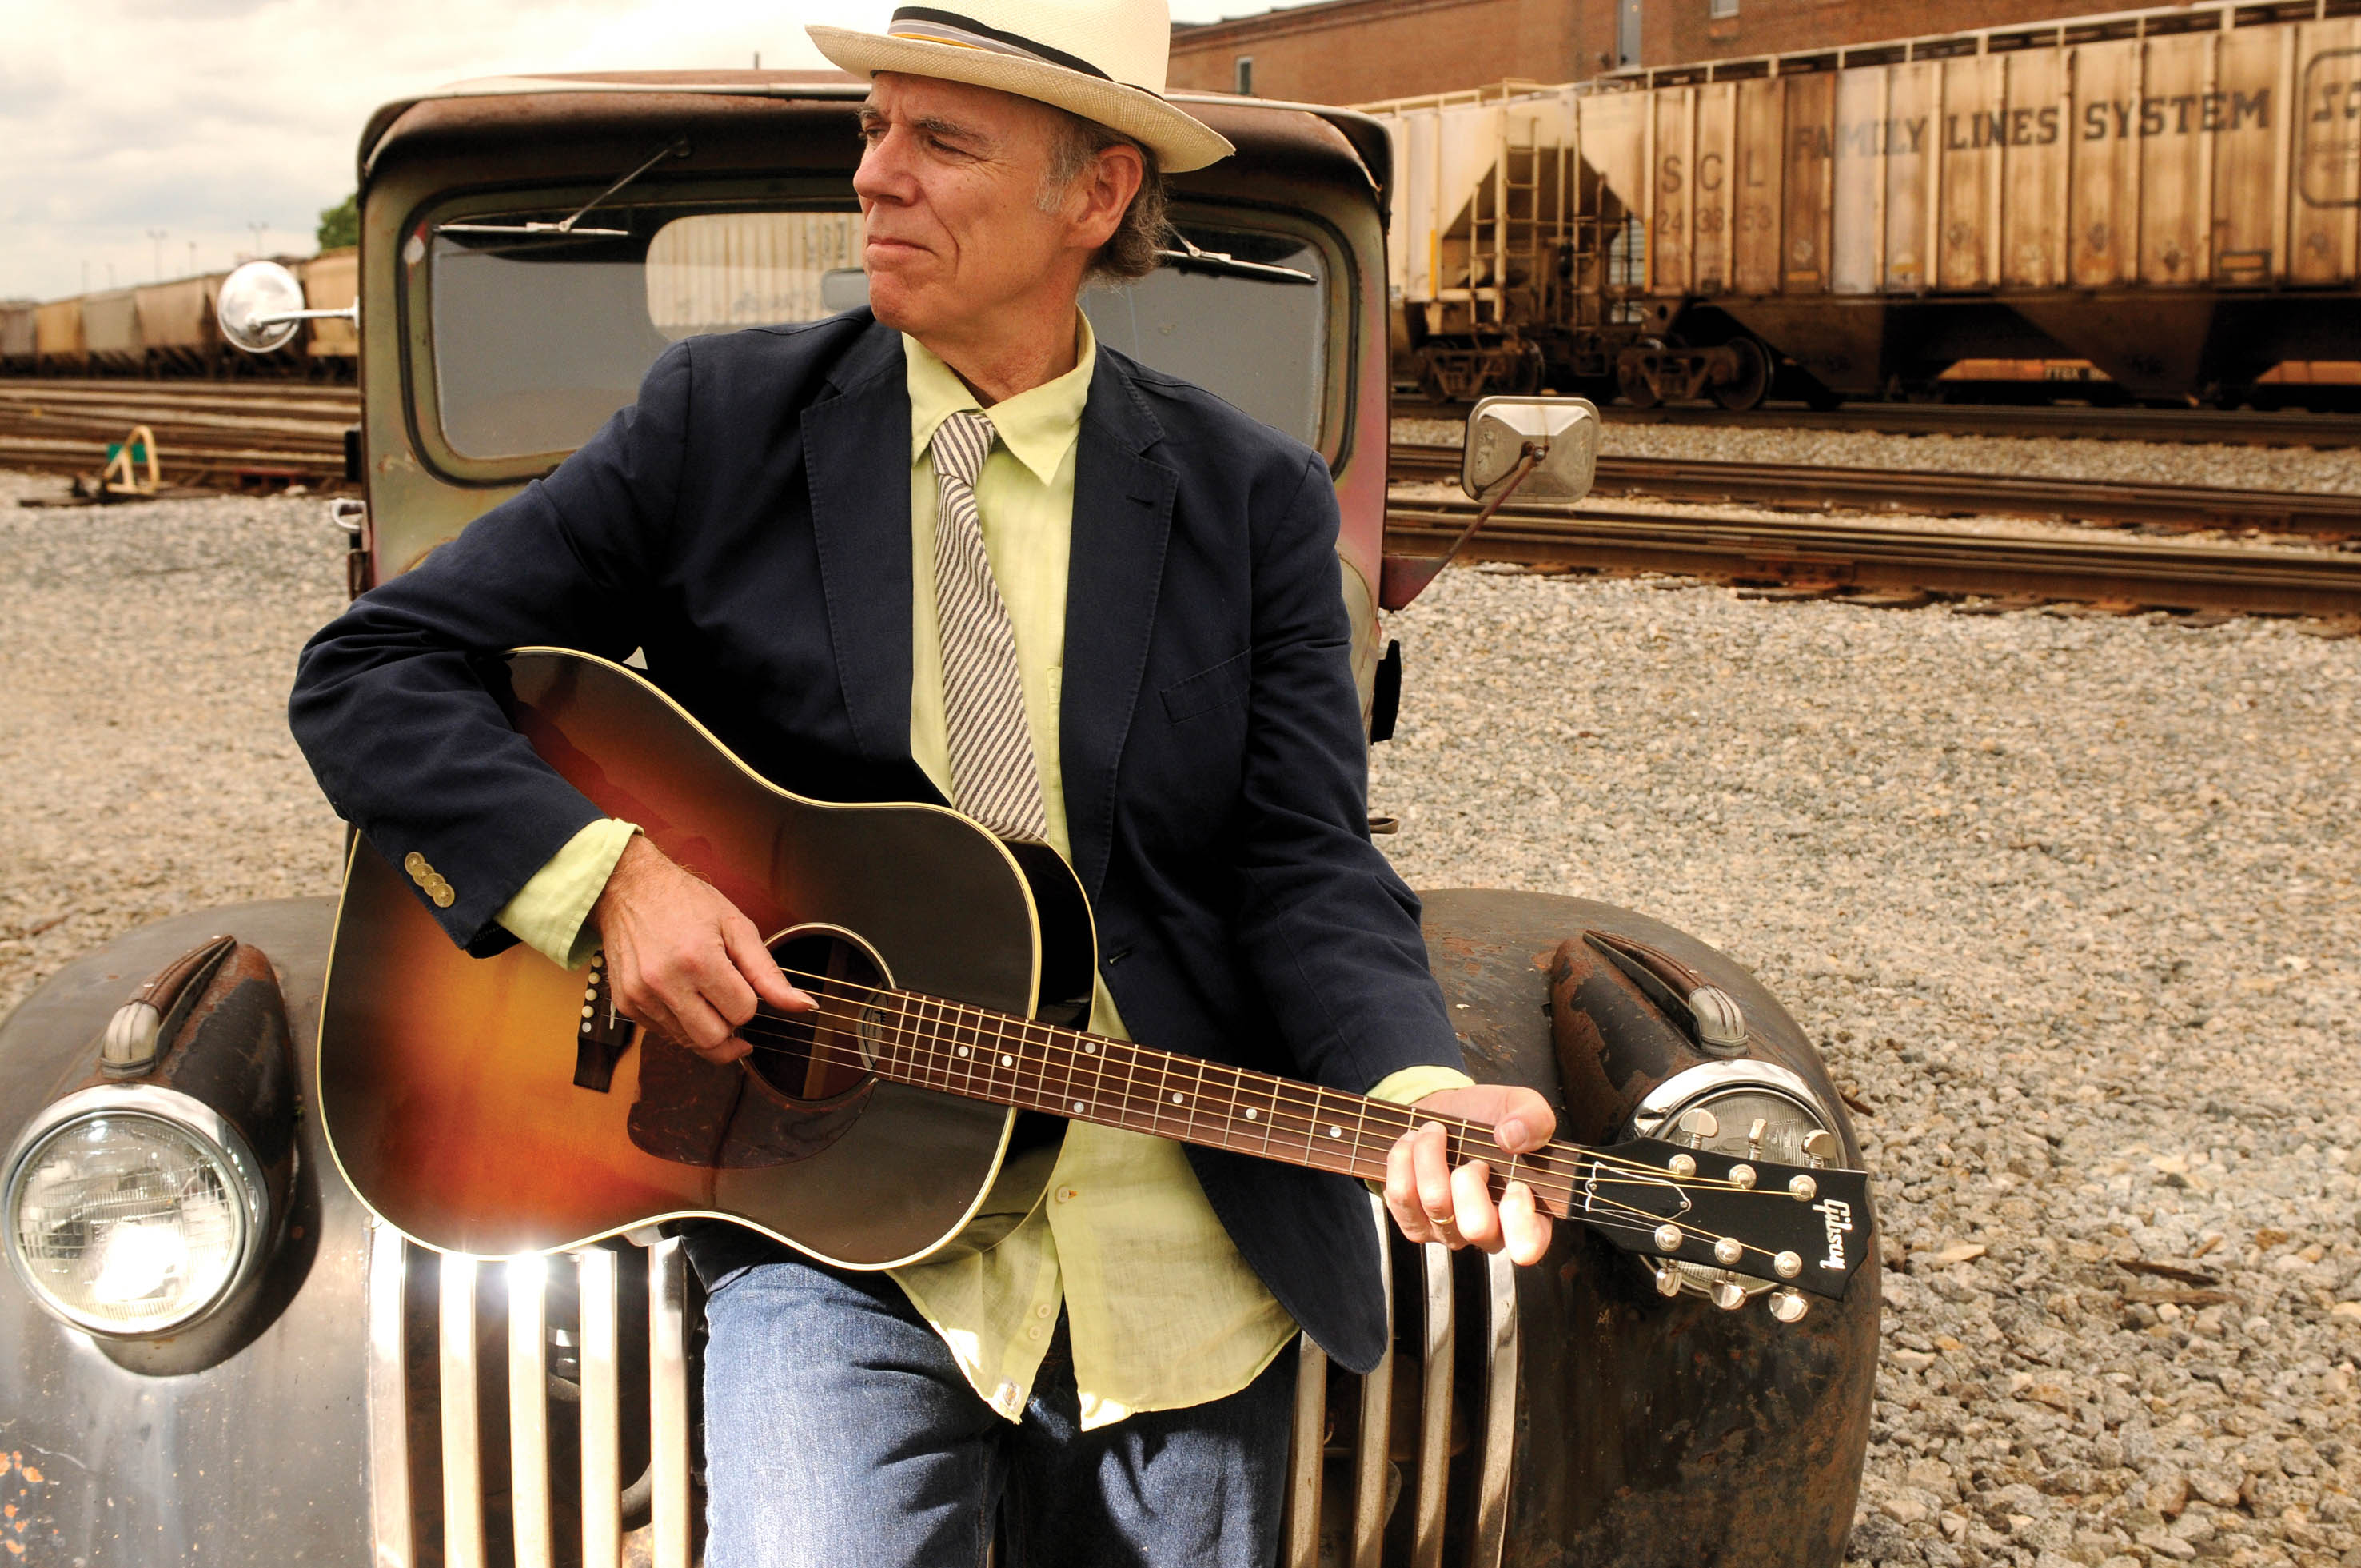 John Hiatt by Jim McGuire